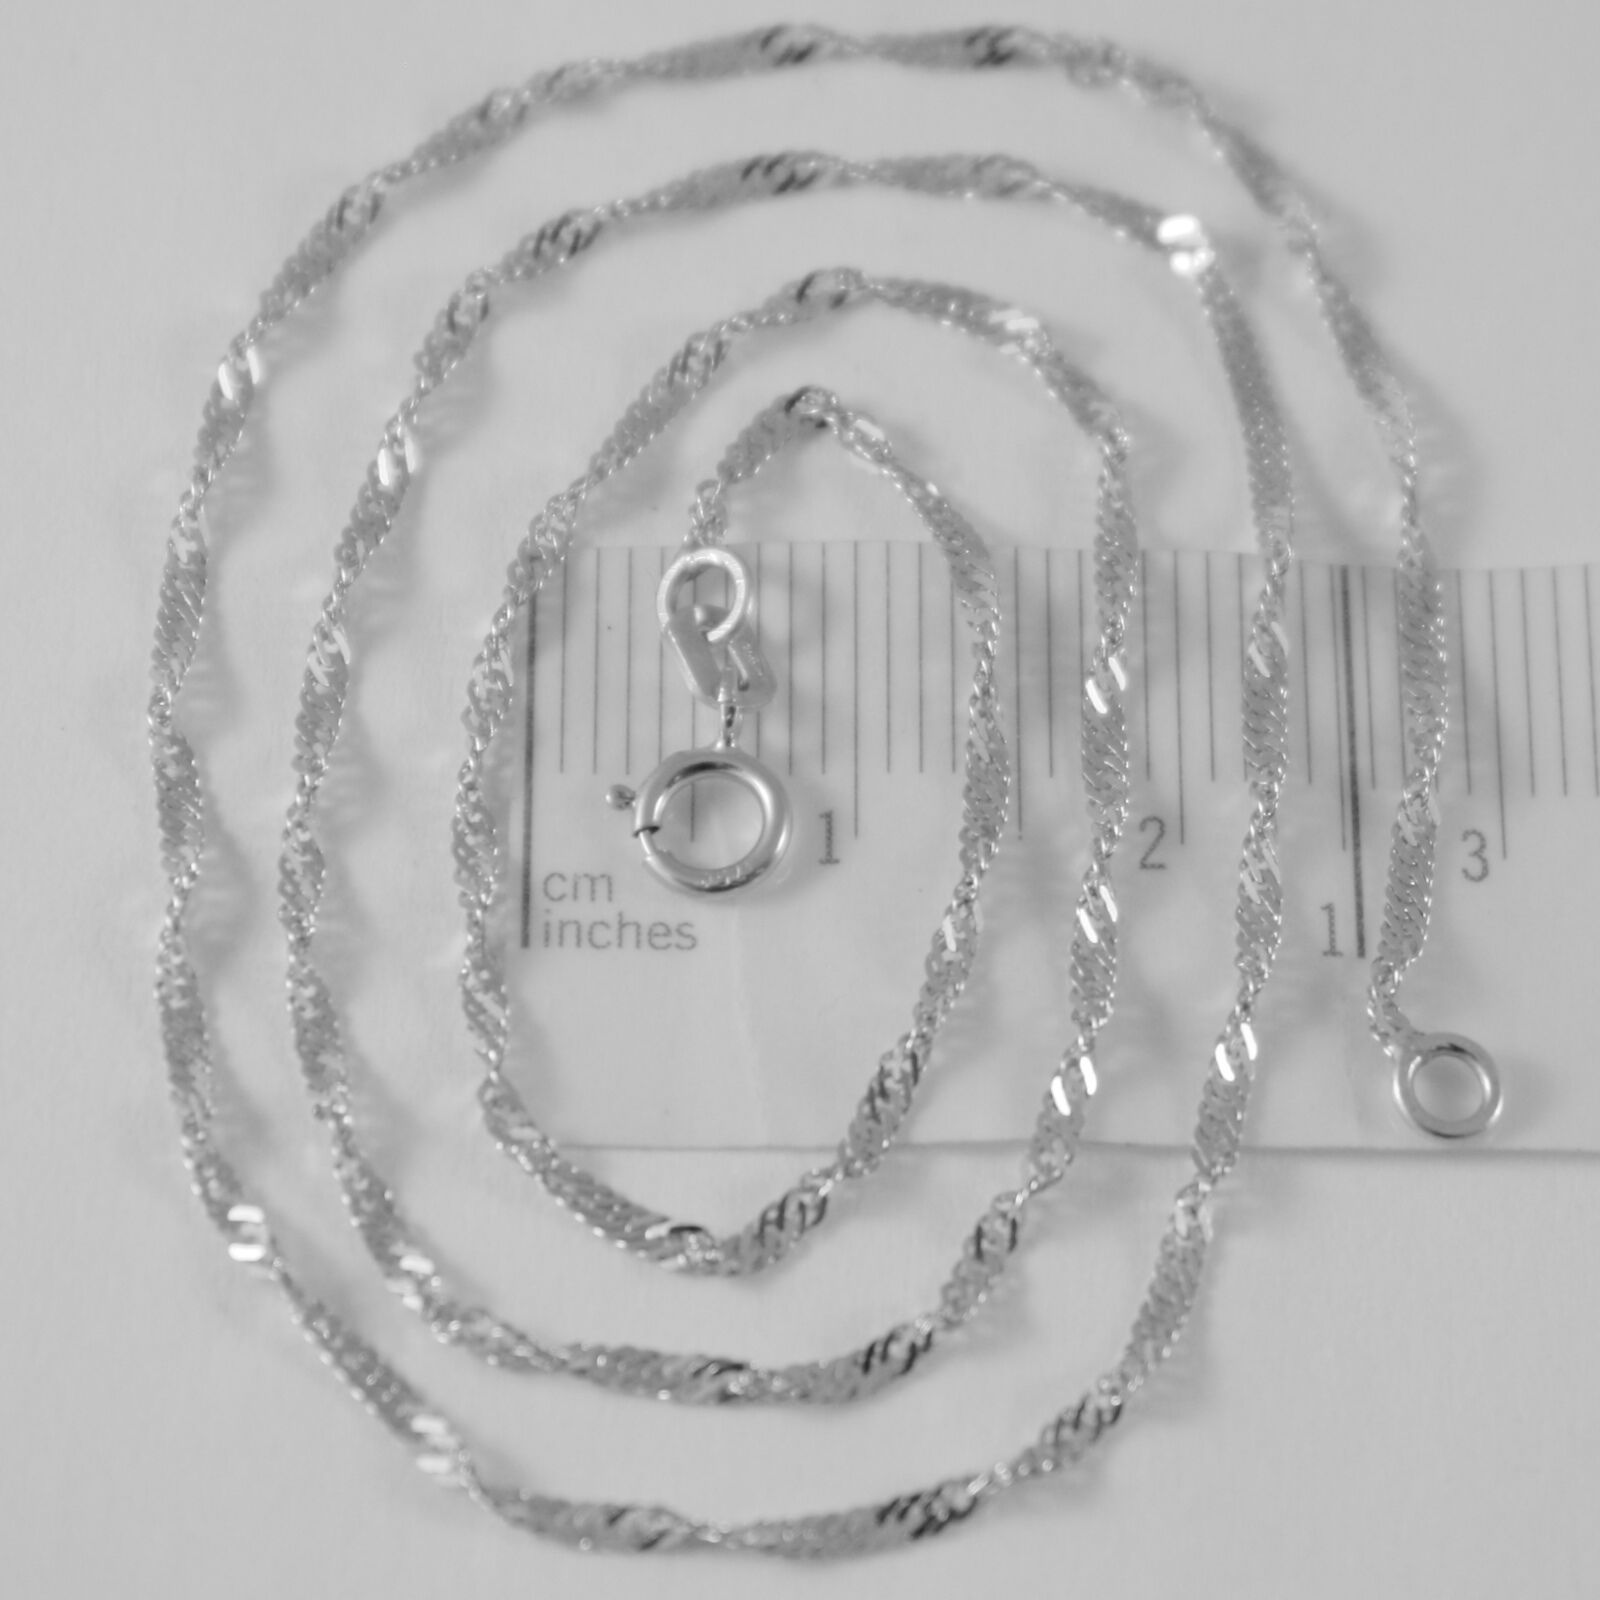 SOLID 18K WHITE GOLD SINGAPORE BRAID ROPE CHAIN 20 INCHES, 2 MM MADE IN ITALY